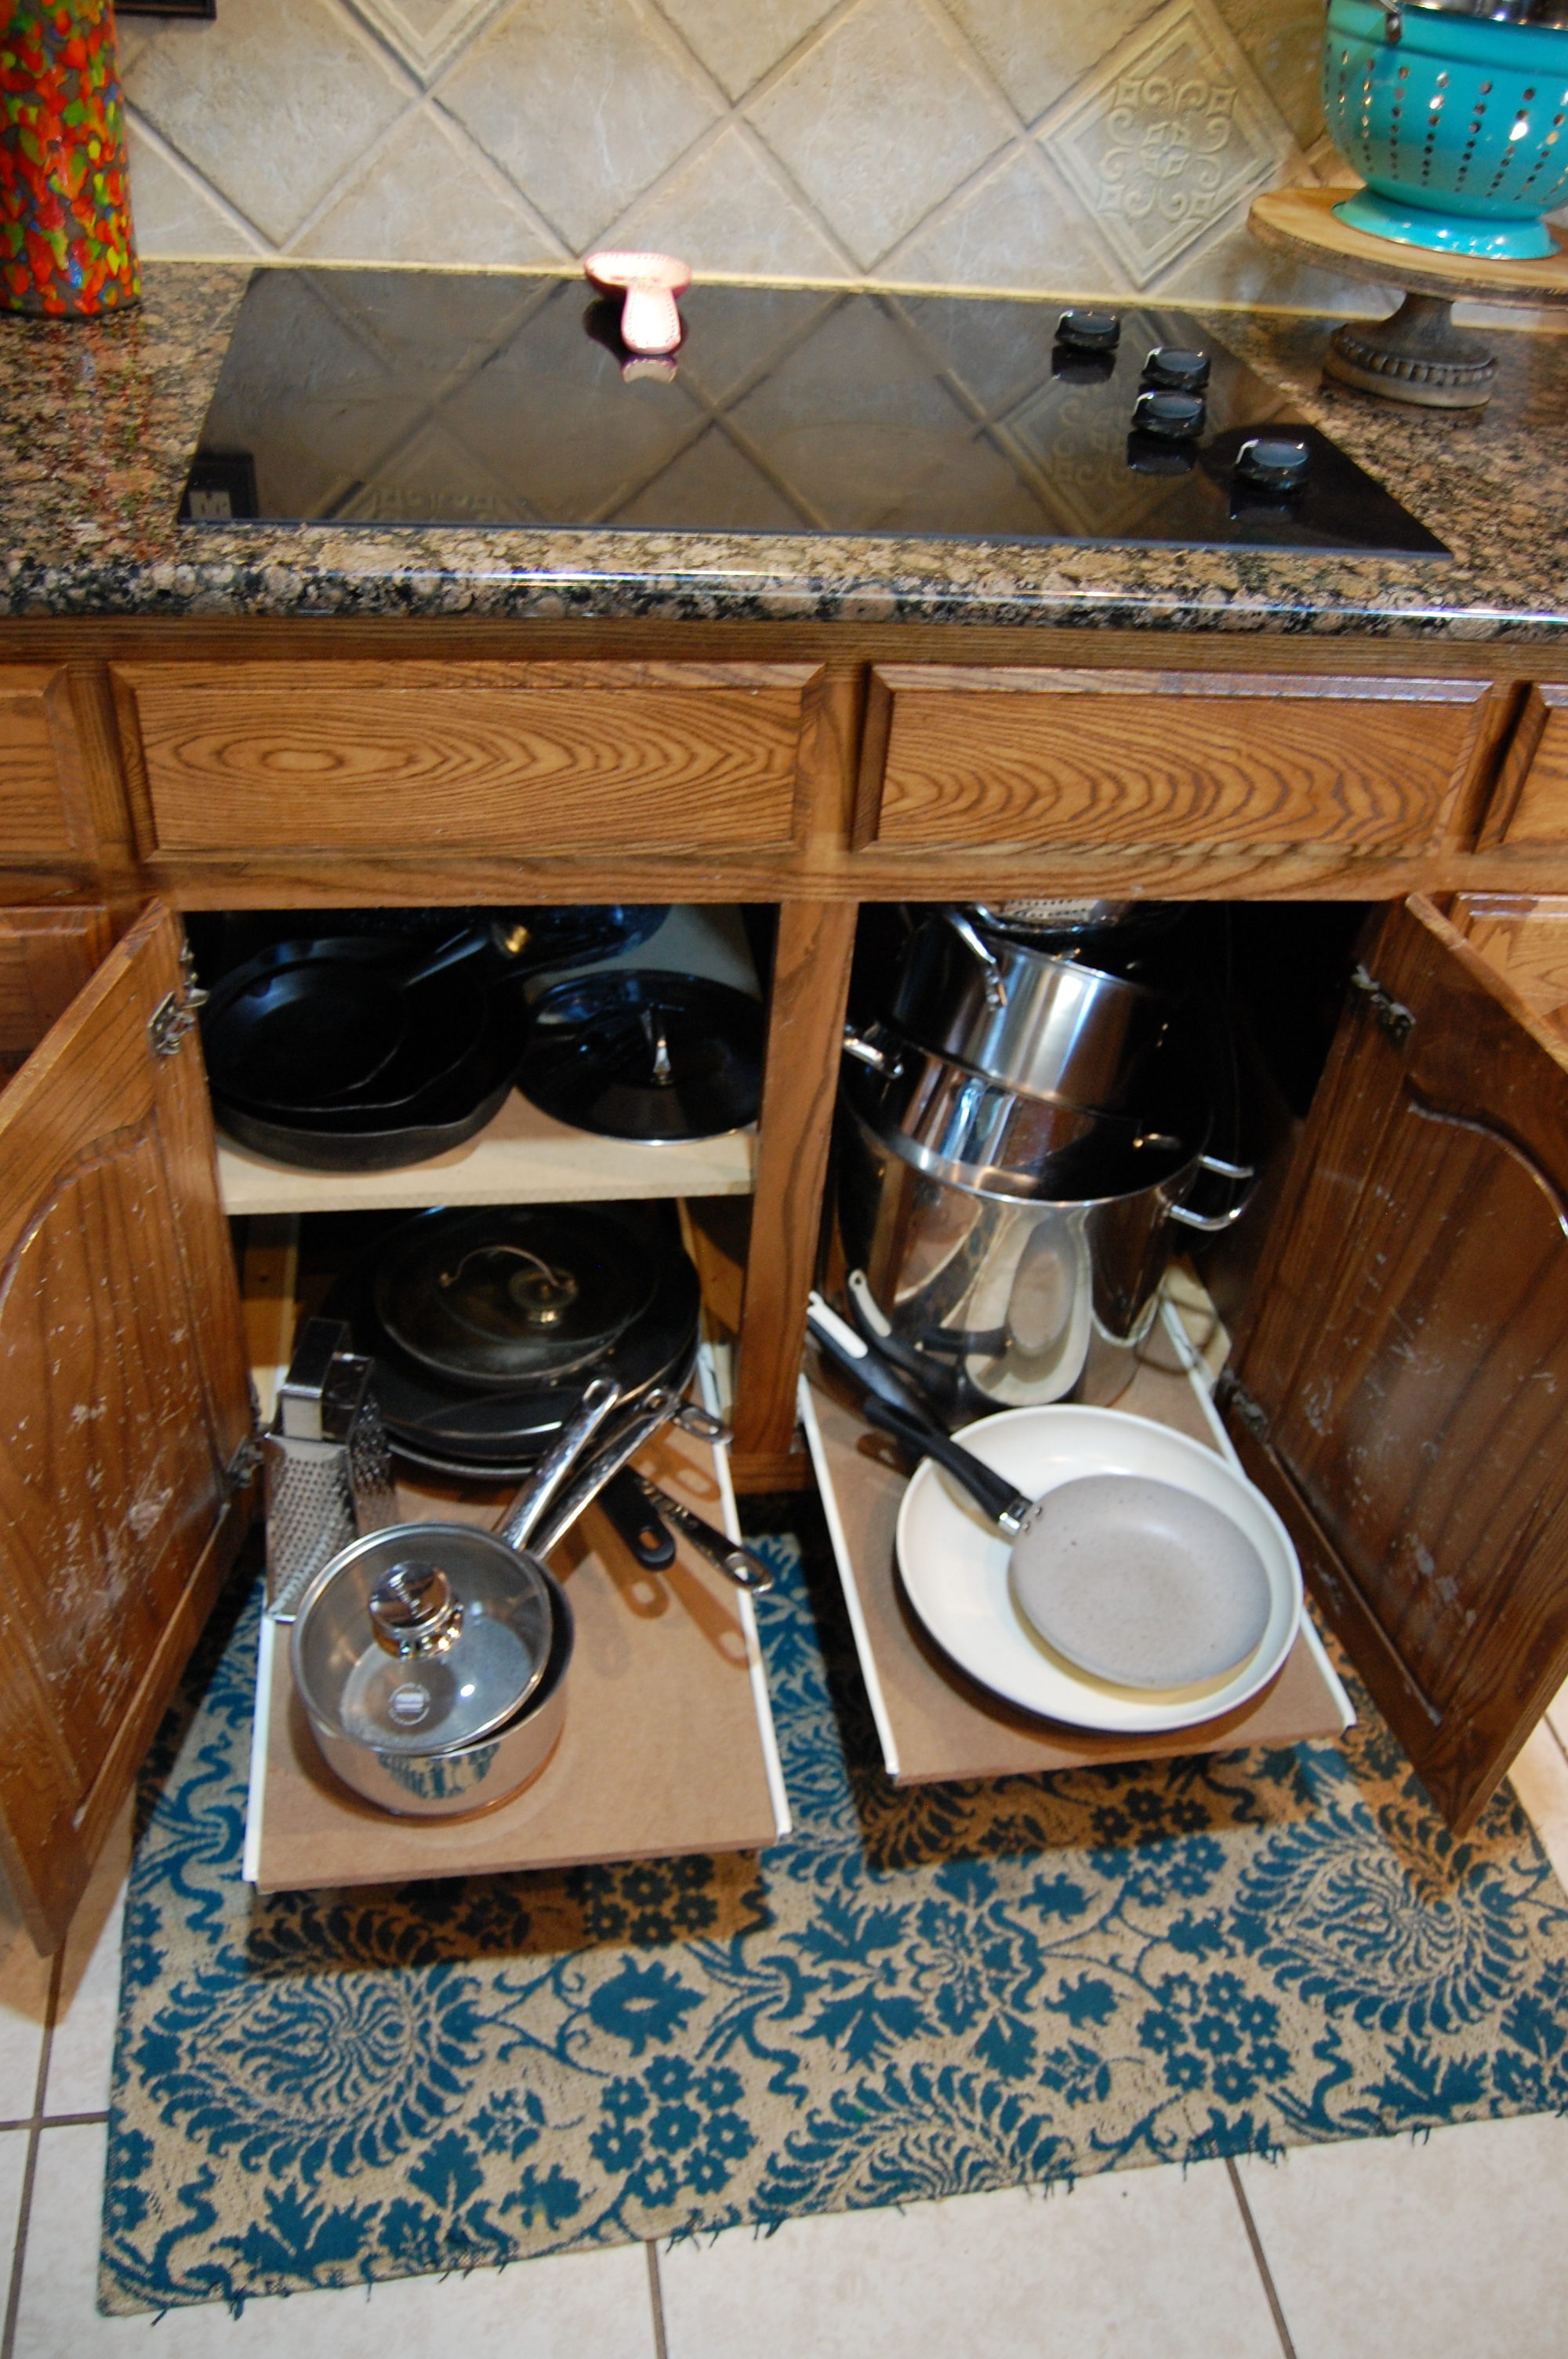 Under Stove top Organization